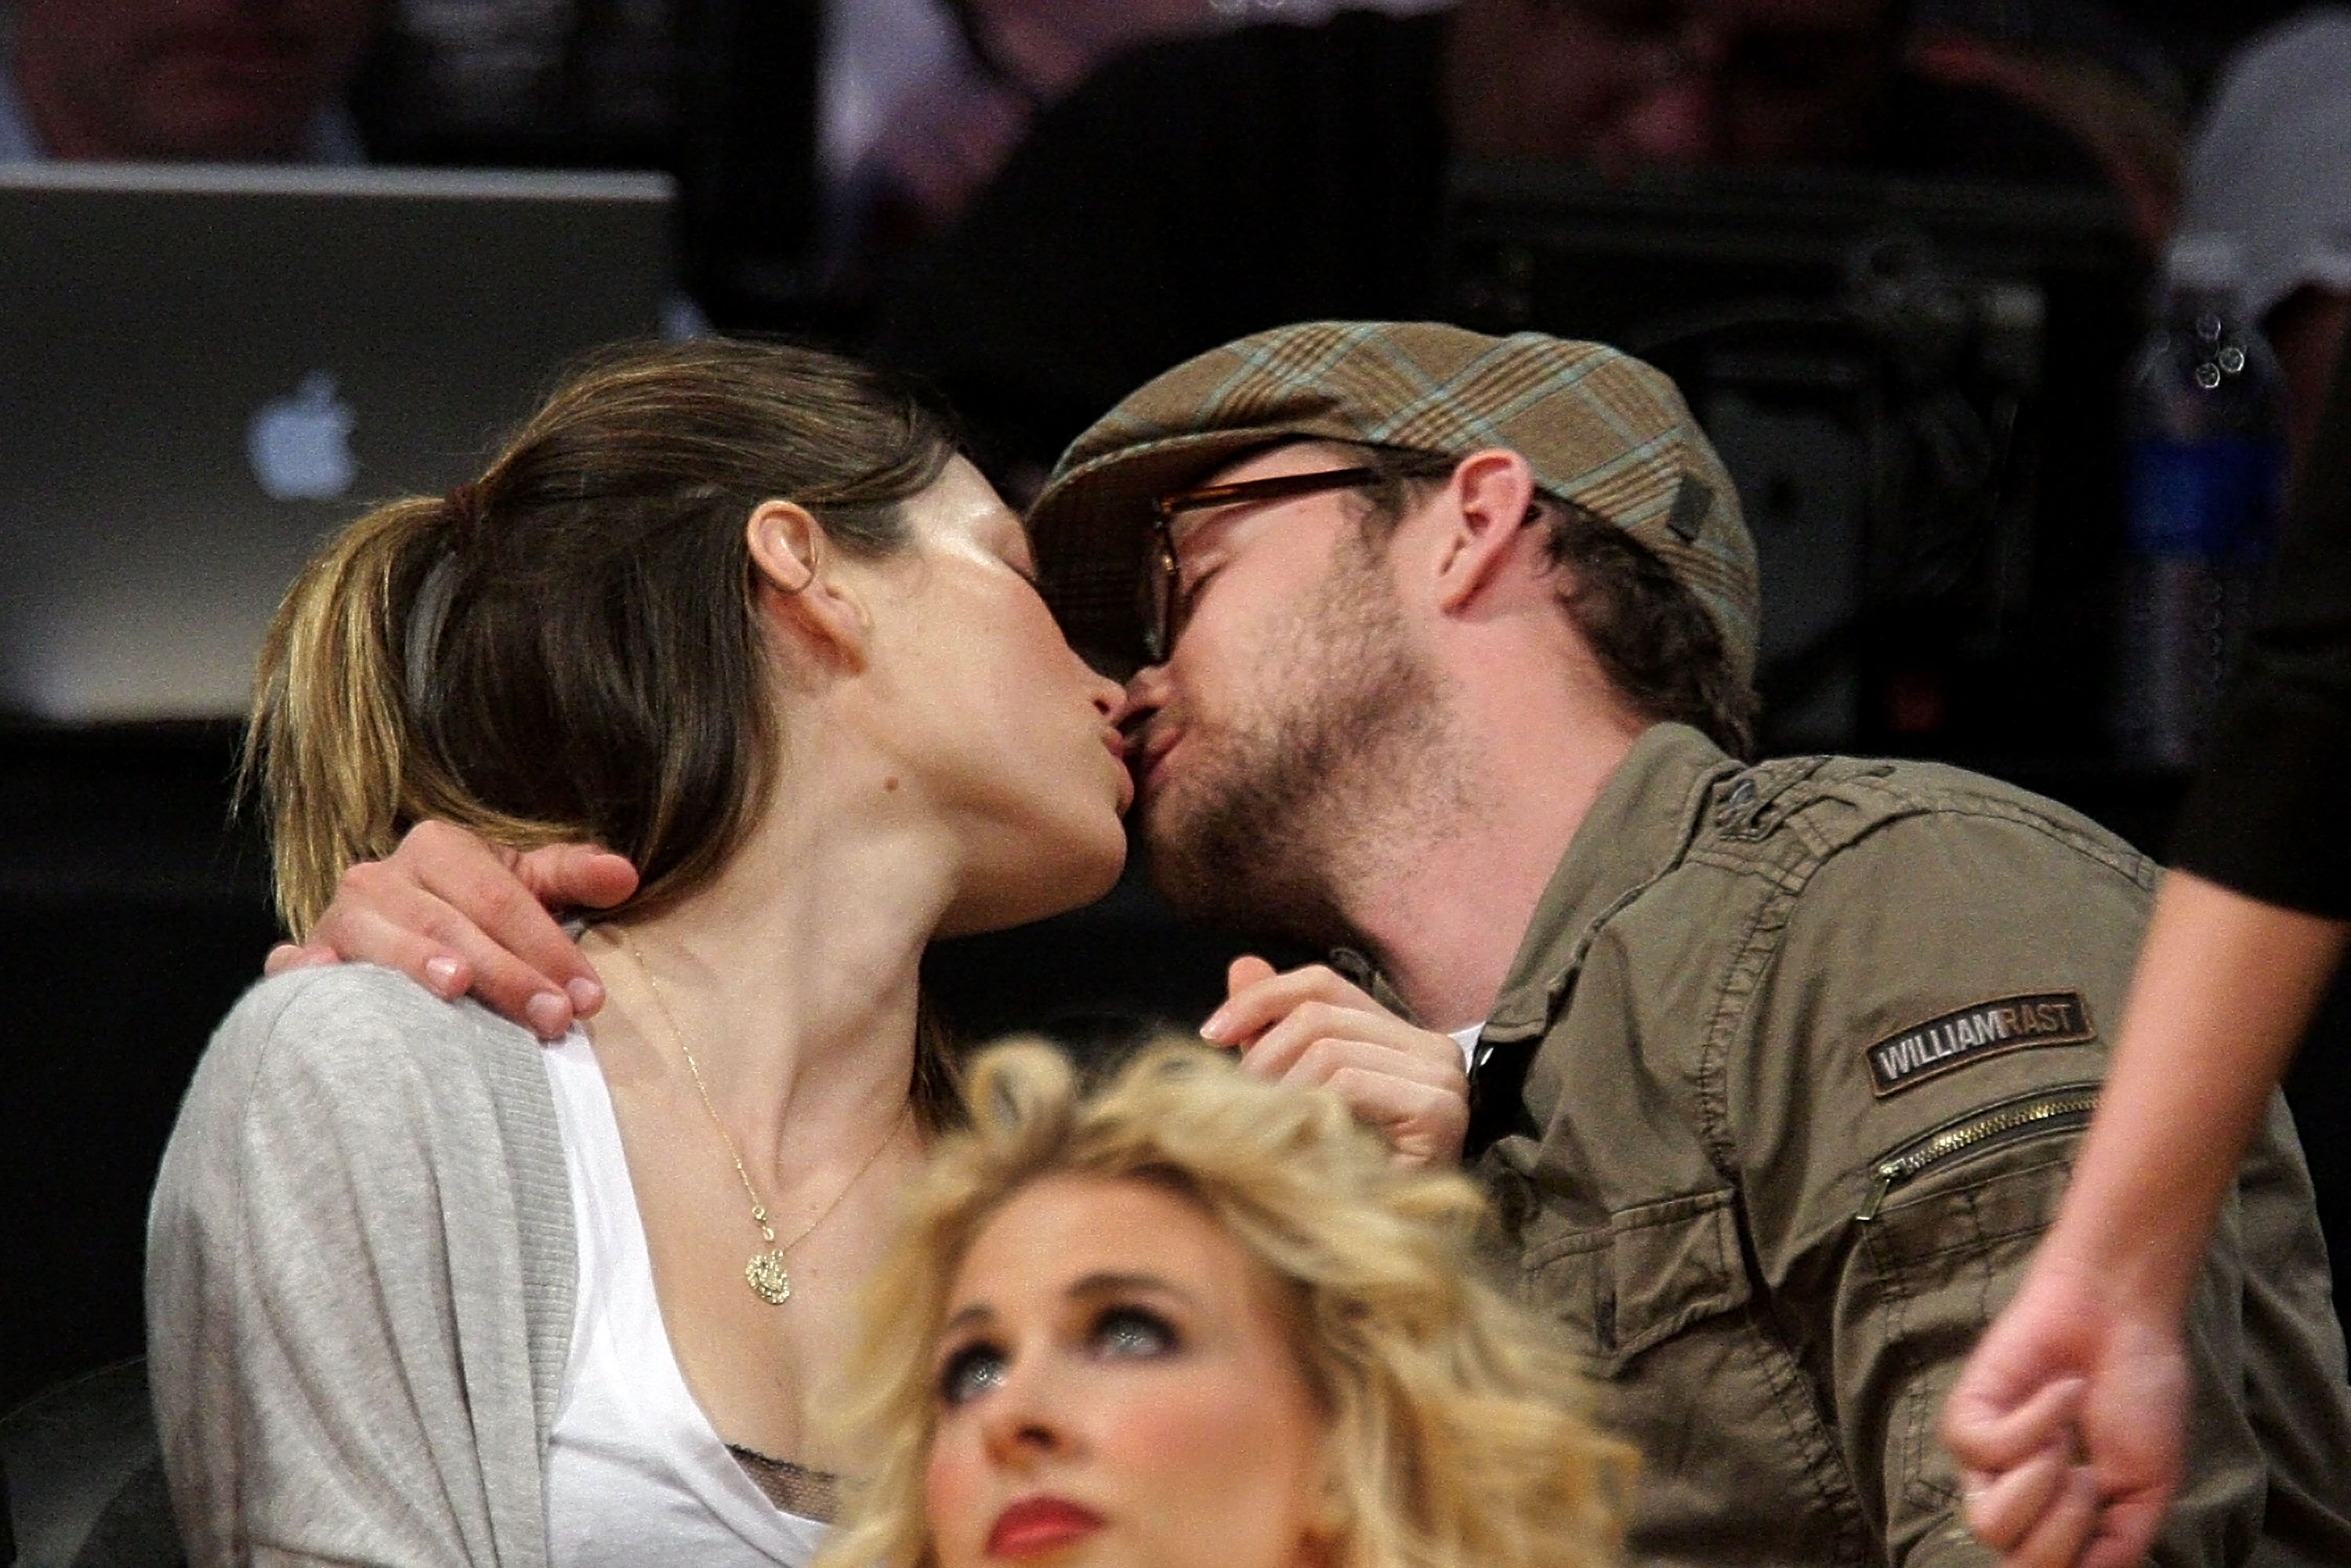 Jessica Biel and Justin Timberlake got into a deep kiss for the camera at a Lakers game.